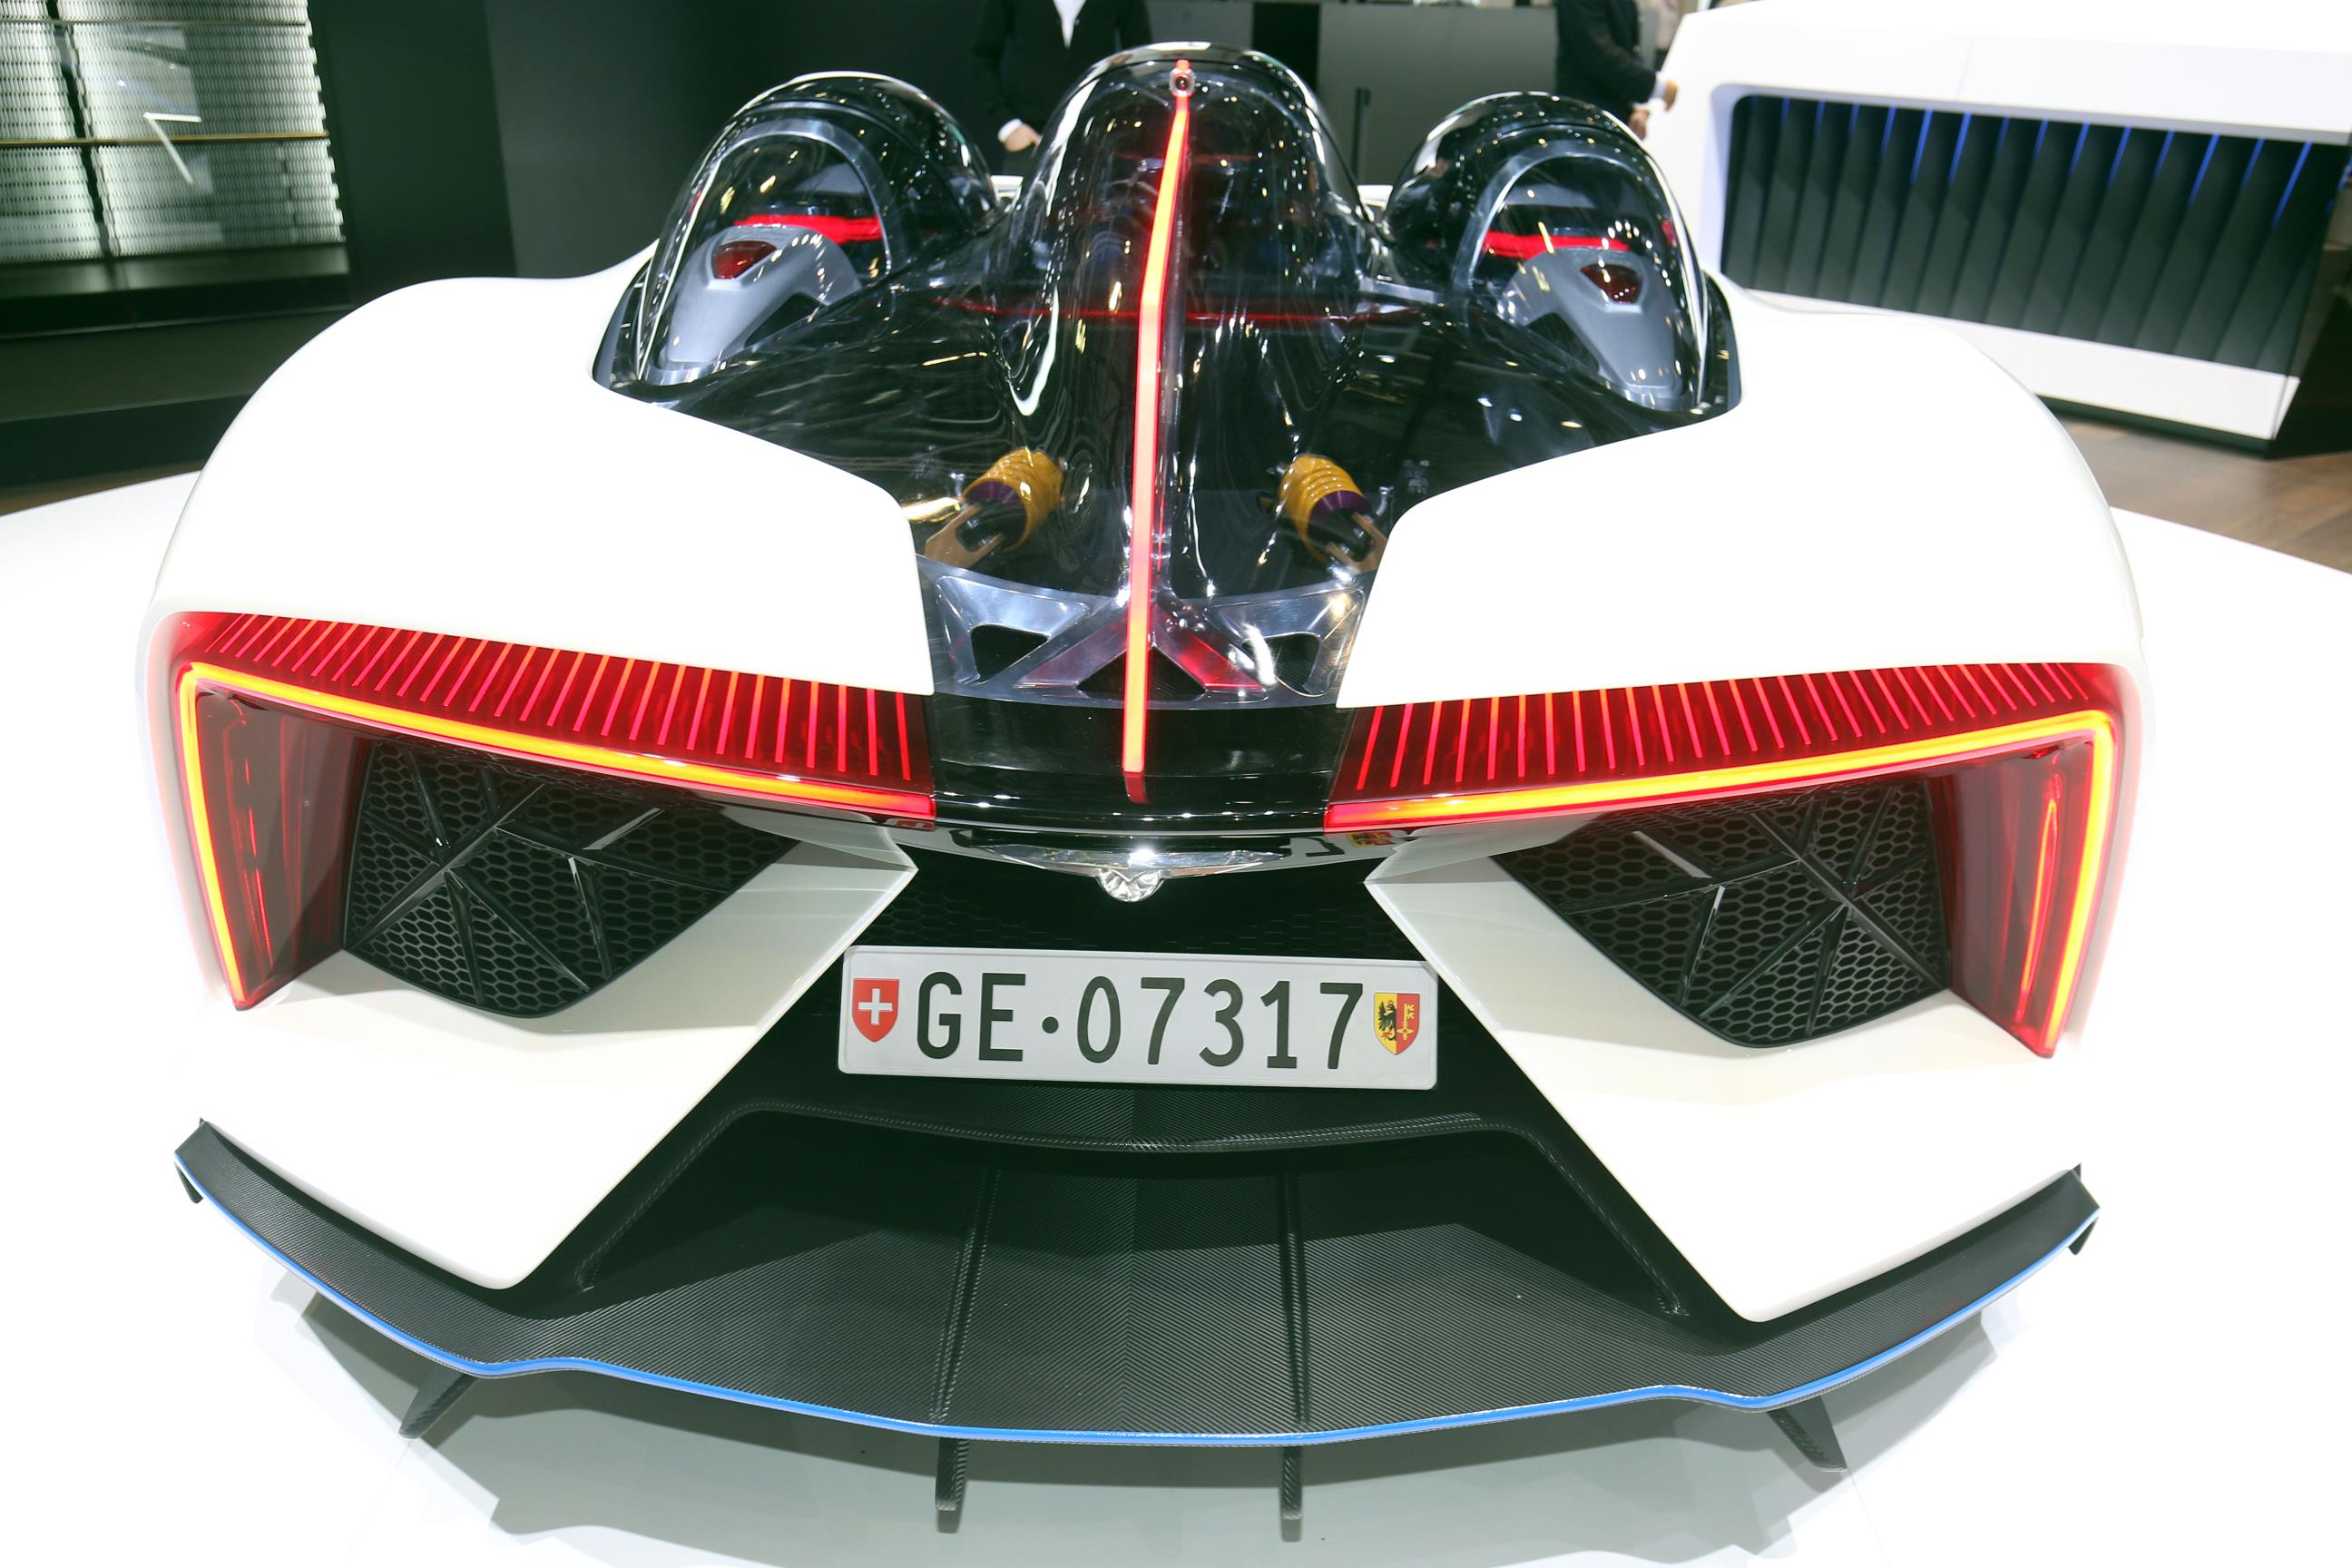 TECHRULES DEBUTS PRODUCTION DESIGN FOR THE Ren SUPERCAR ...